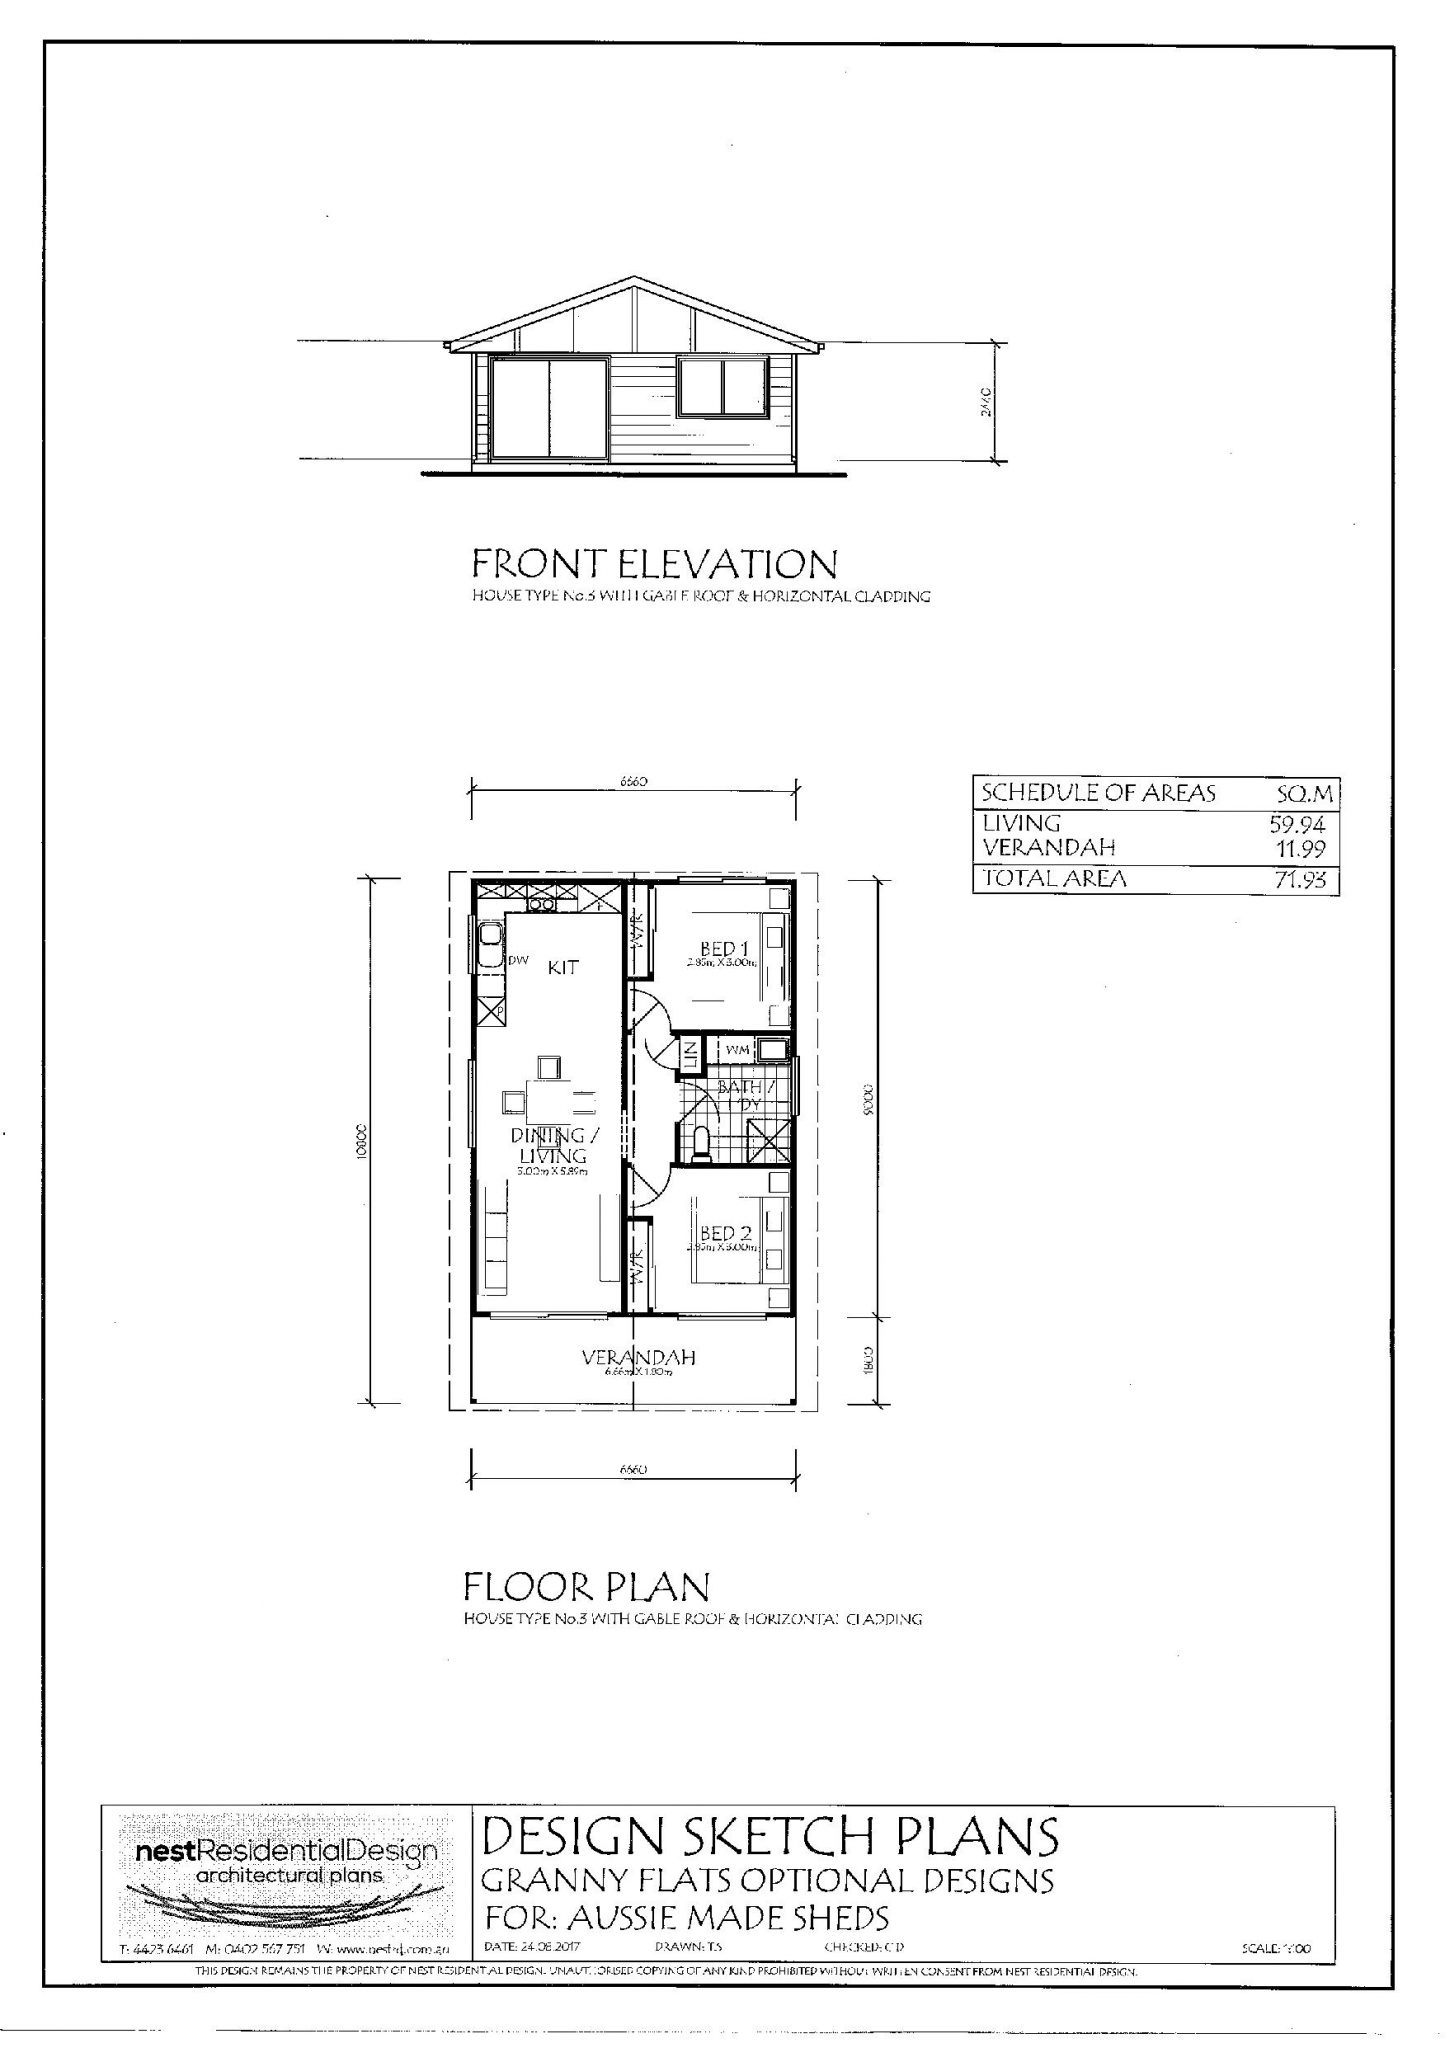 design-sketch-plans-aussie-made-sheds-24-august-2017-rotated-page-005